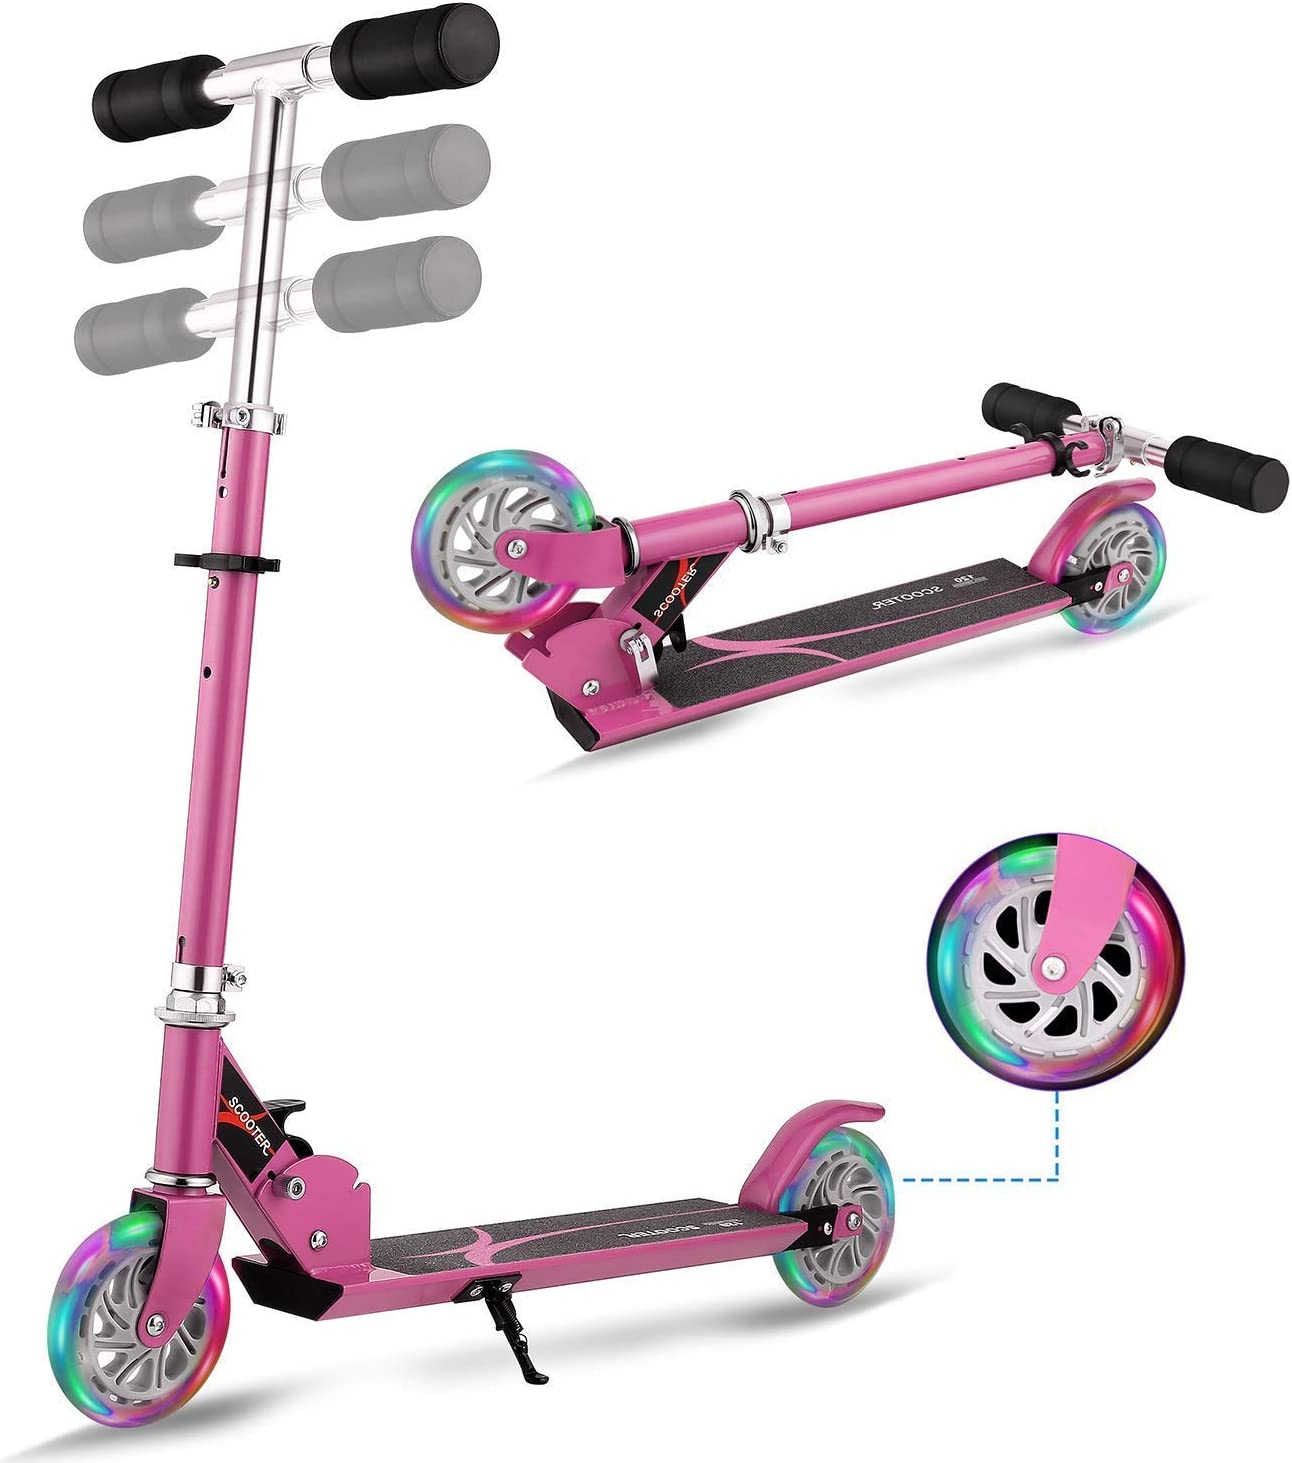 WeSkate Scooter for Kids Foldable 2 Wheel Light Up Kick Scooter for Girl Adjustable Height Gift for 3-12 Years